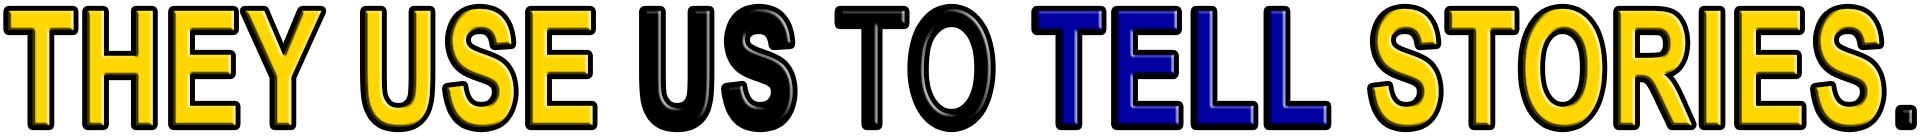 They USE Us to TELL STORIES